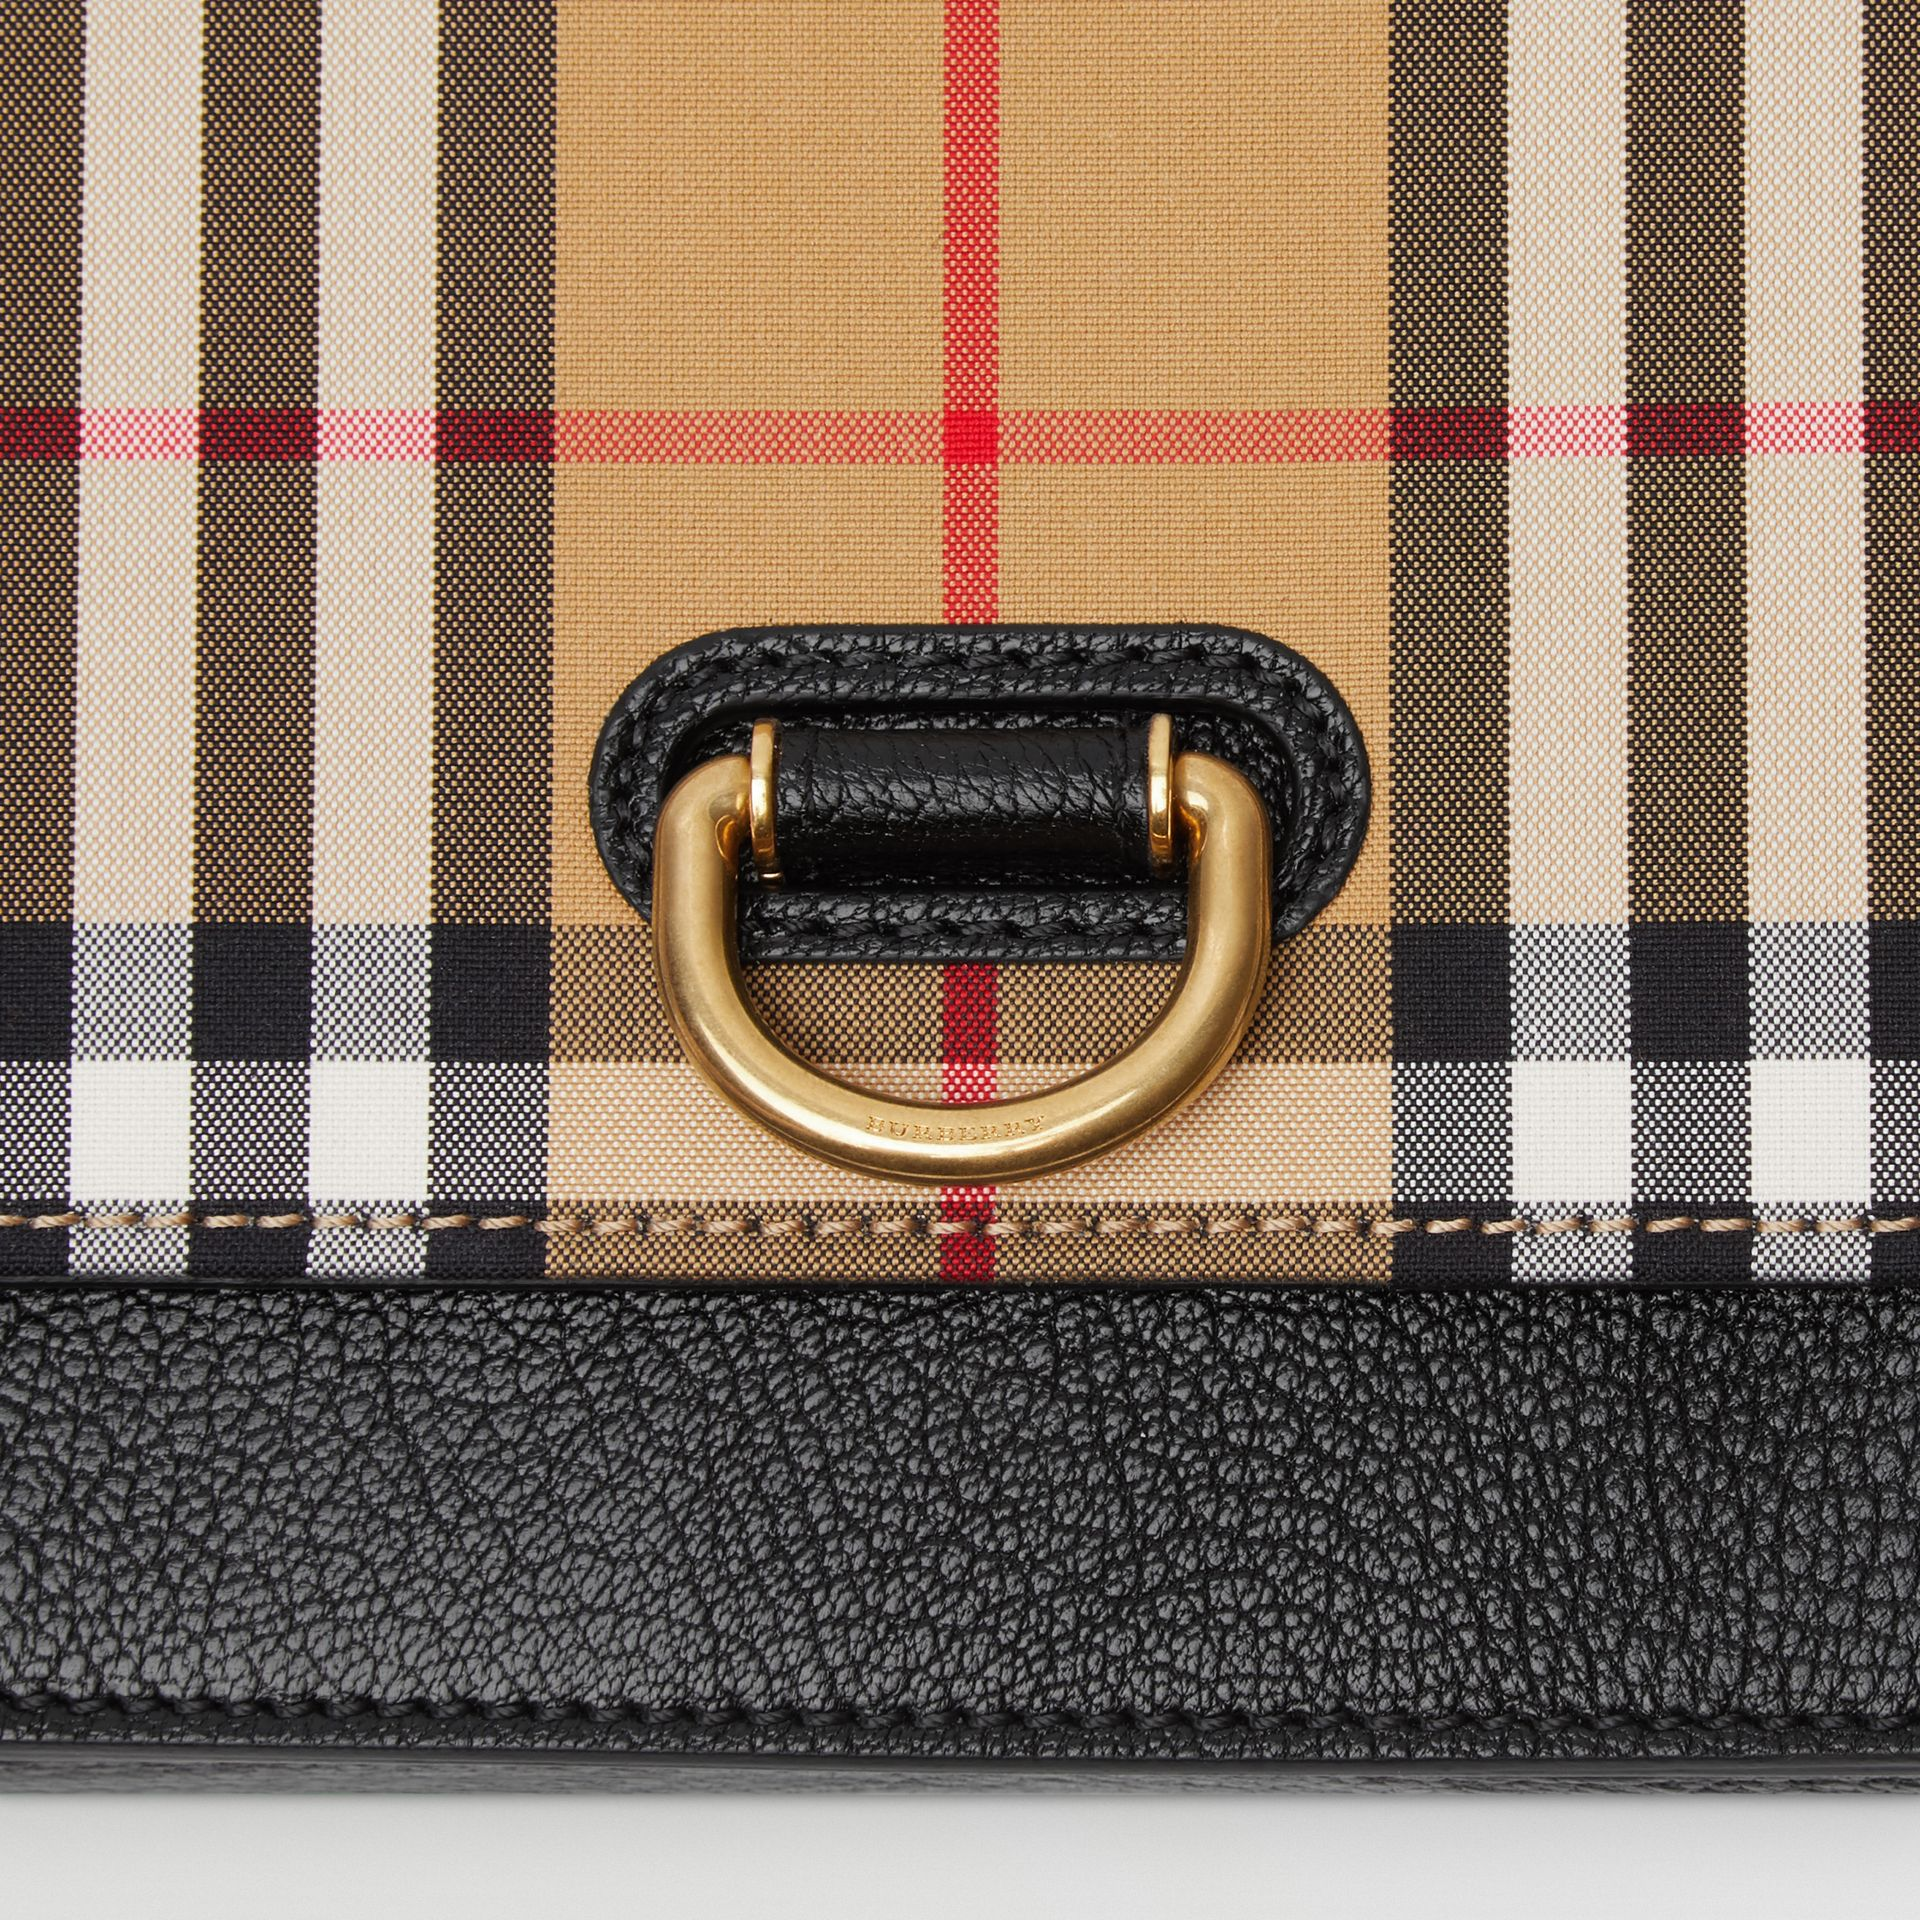 The Mini Vintage Check and Leather D-ring Bag in Black - Women | Burberry Australia - gallery image 1